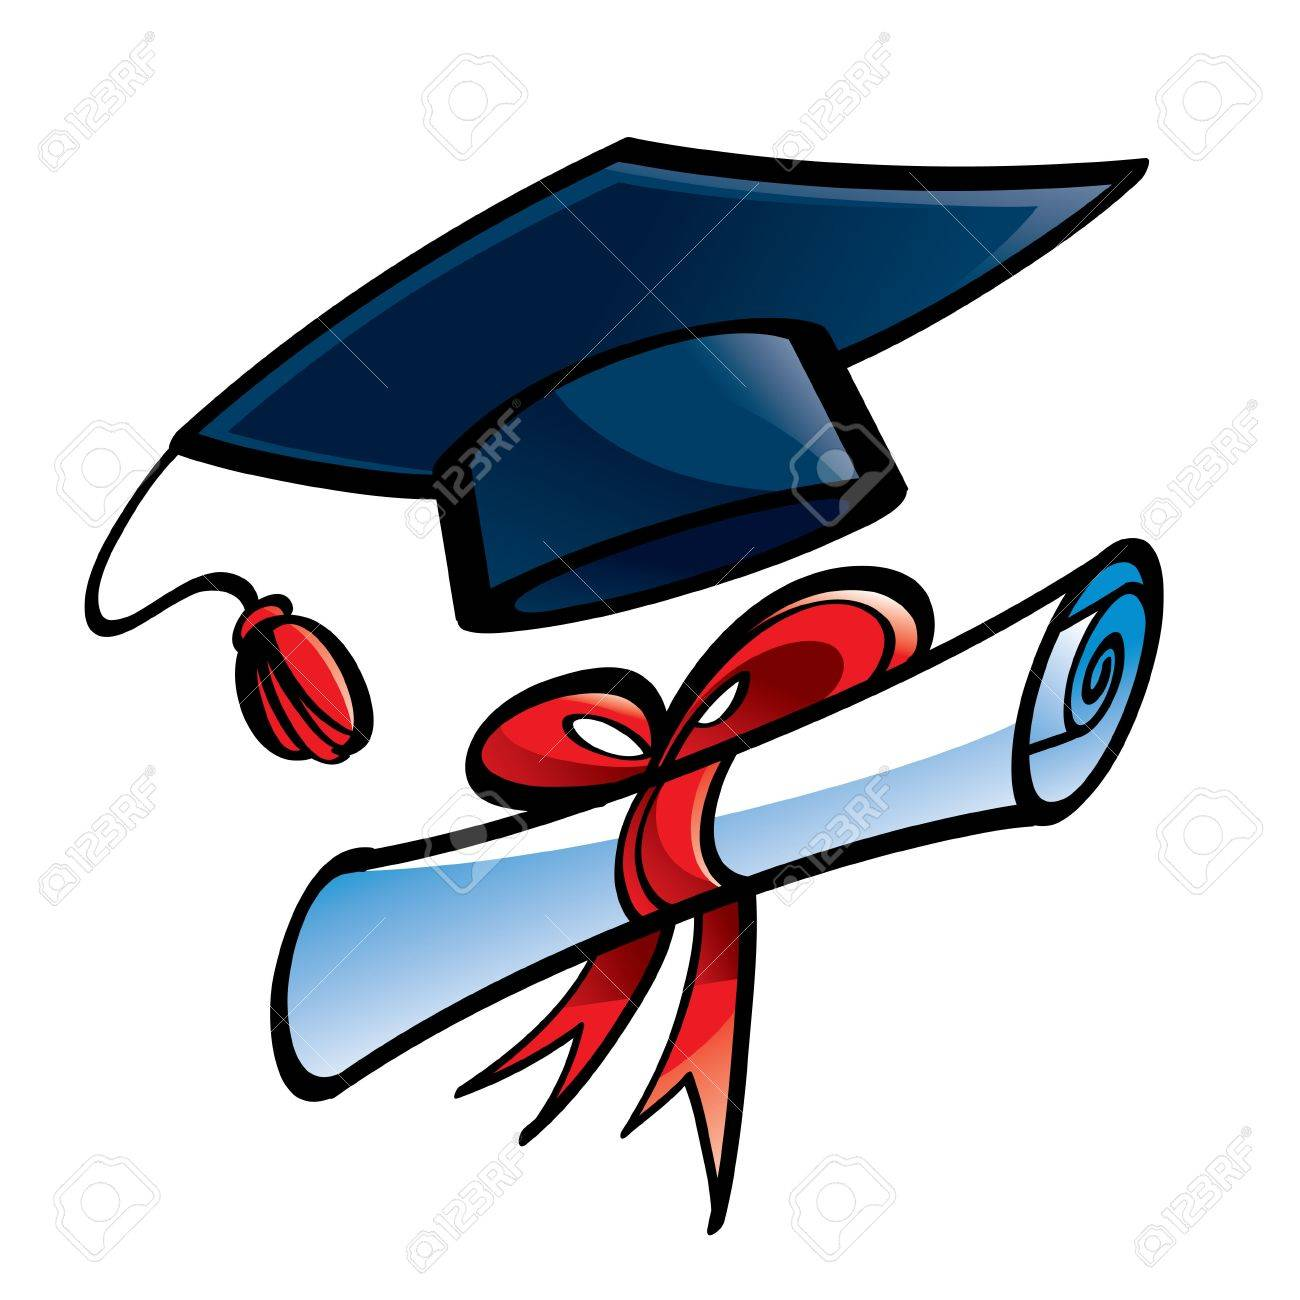 Education Graduation Cap And Diploma College Royalty Free Cliparts ... a2586c81945